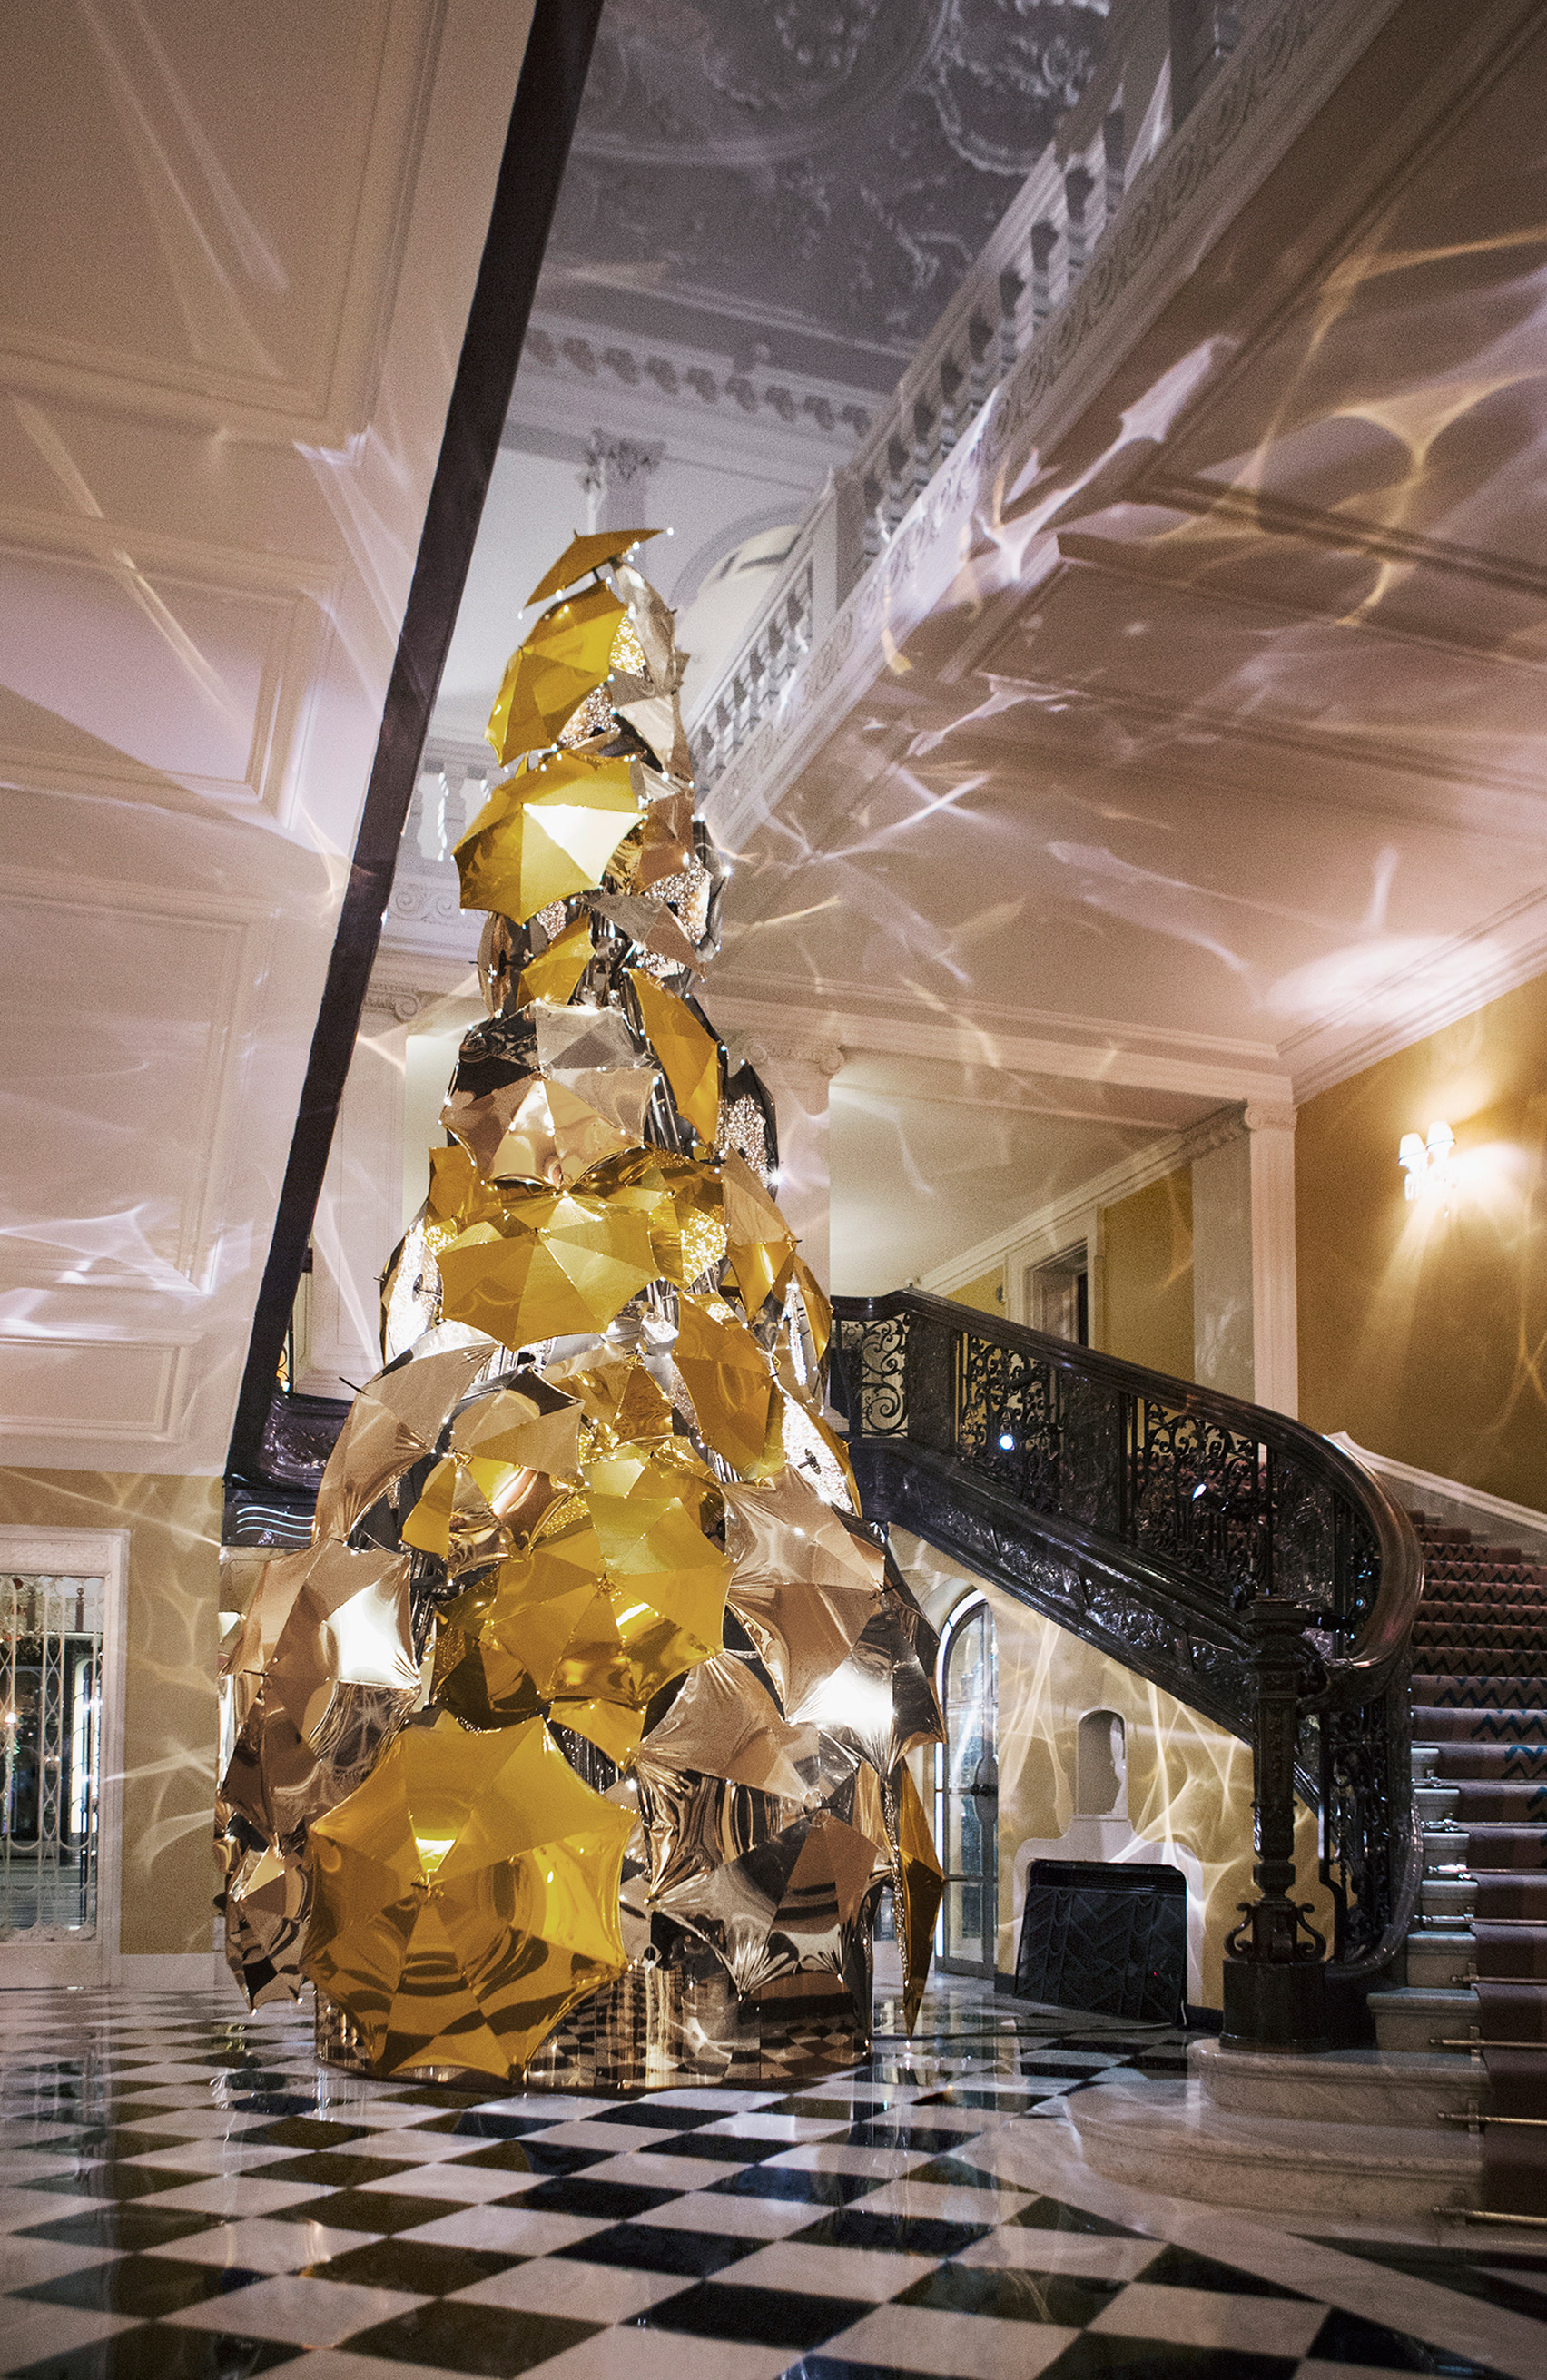 jony-ive-marc-newson-design-christmas-tree-claridges-hotel-london-uk-news_dezeen_1704_col_2